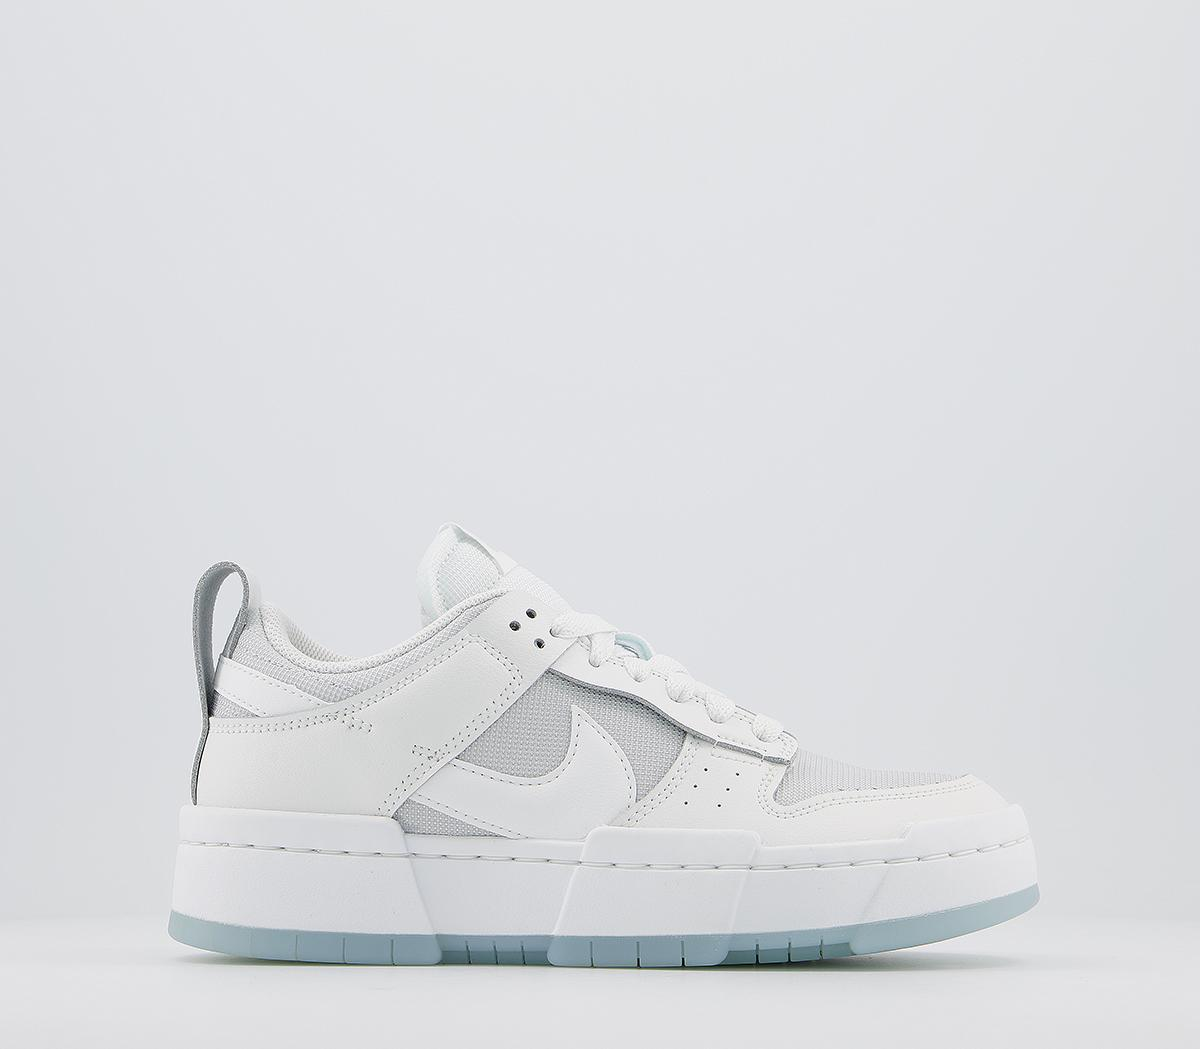 Nike Dunk Low Disrupt Trainers